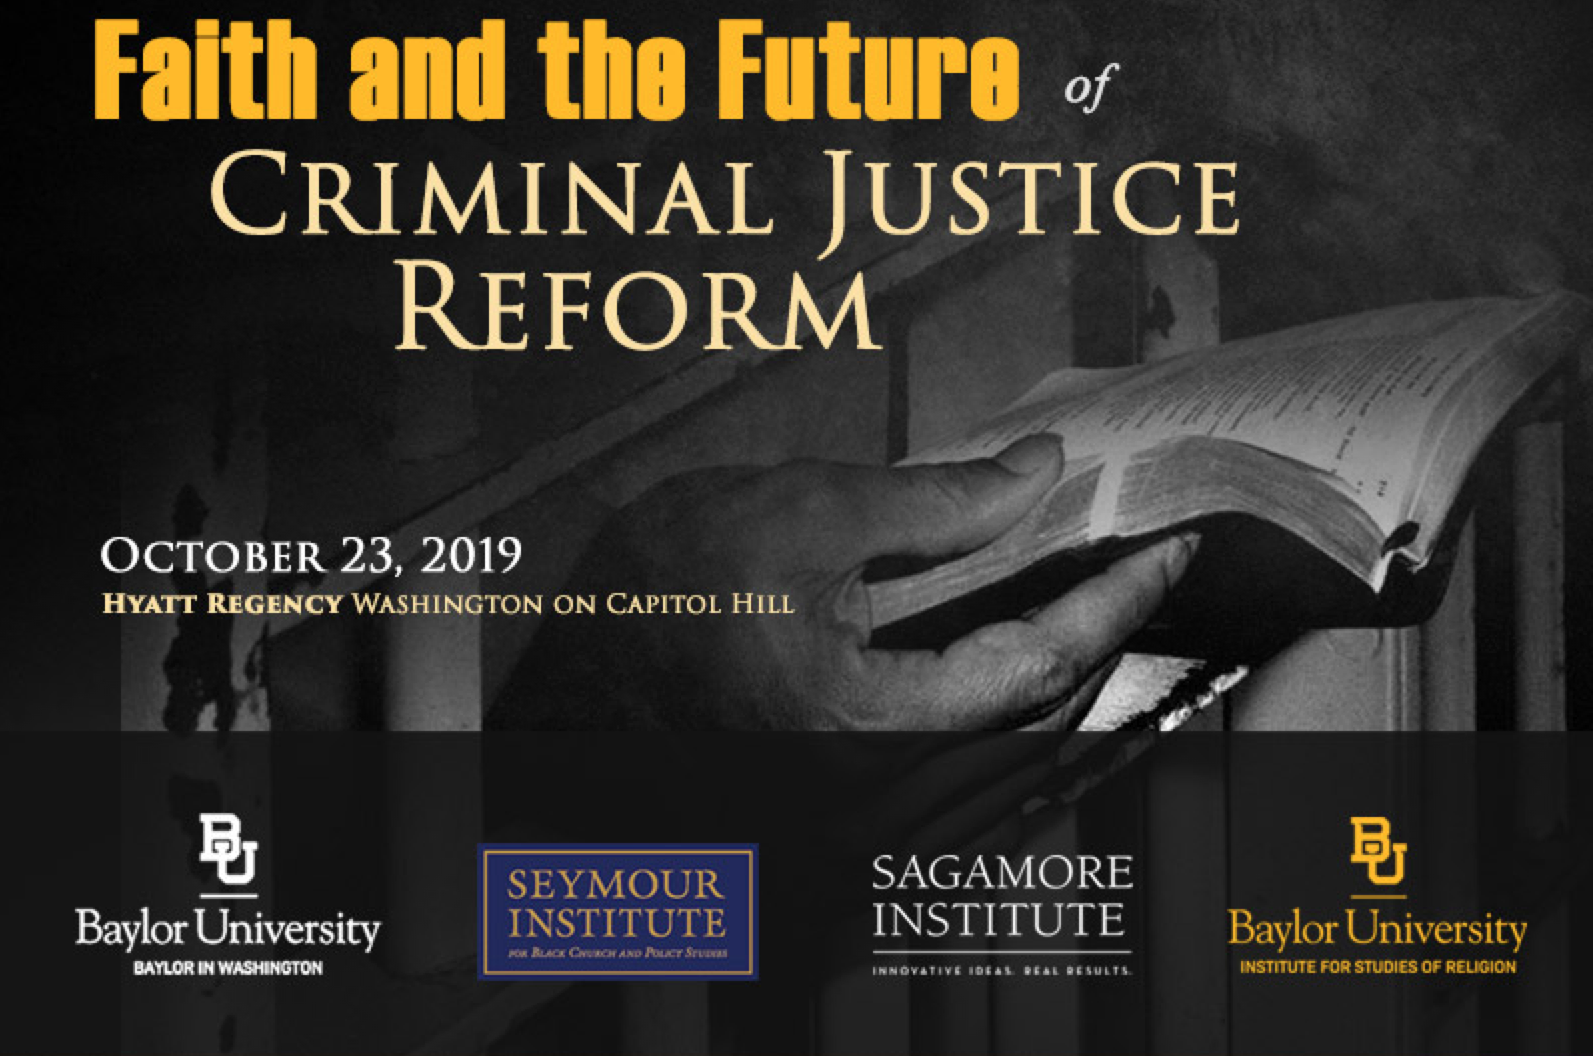 Faith and the Future of Criminal Justice Reform @ Hyatt Regency Washington on Capitol Hill